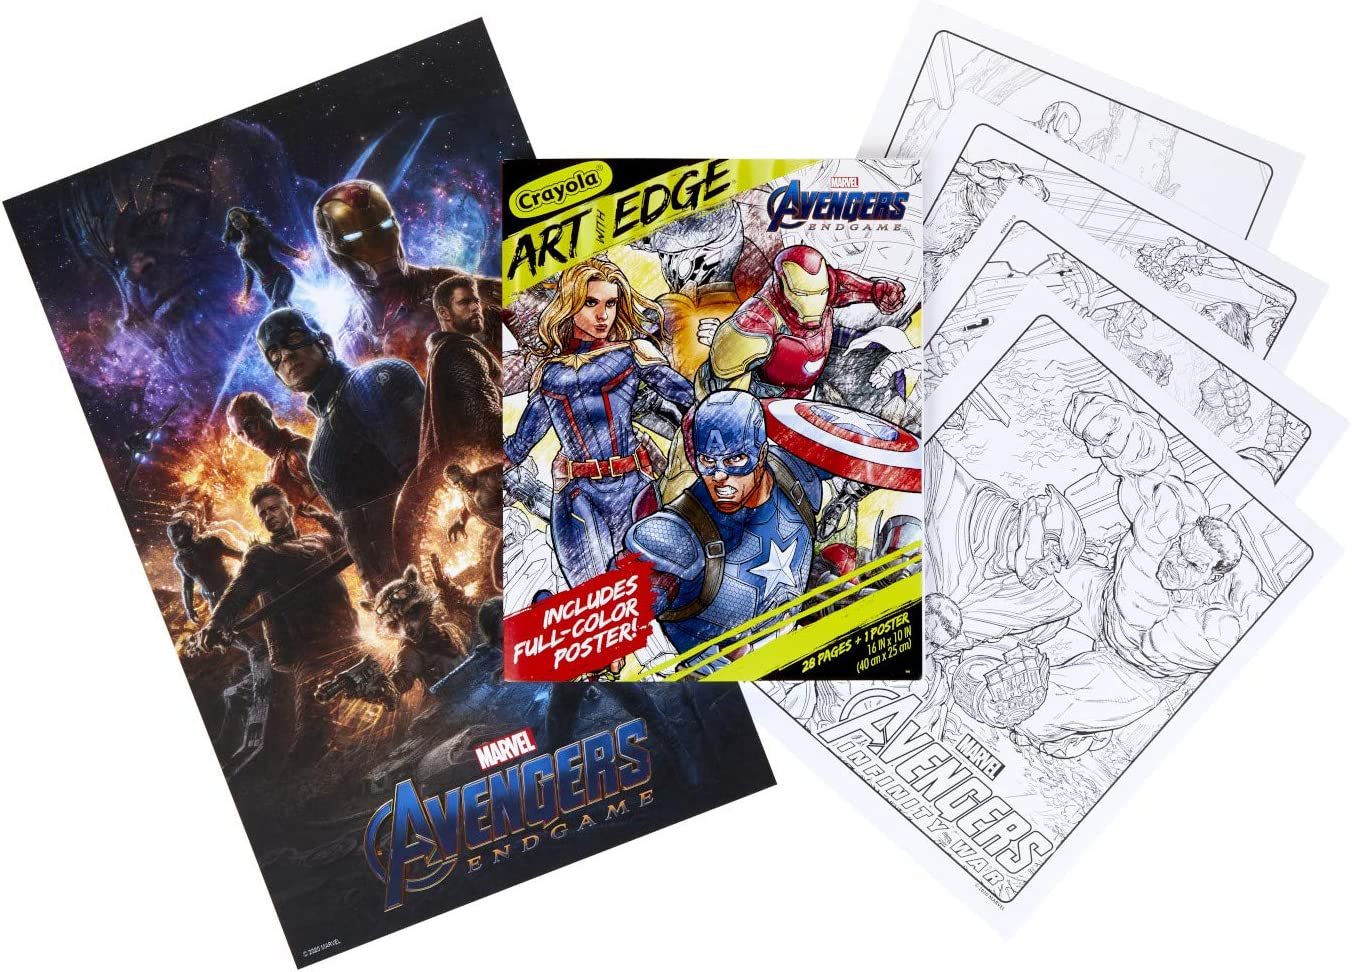 Amazon Com Crayola Marvel Avengers Endgame Coloring Pages Poster 28 Pages Toys Games